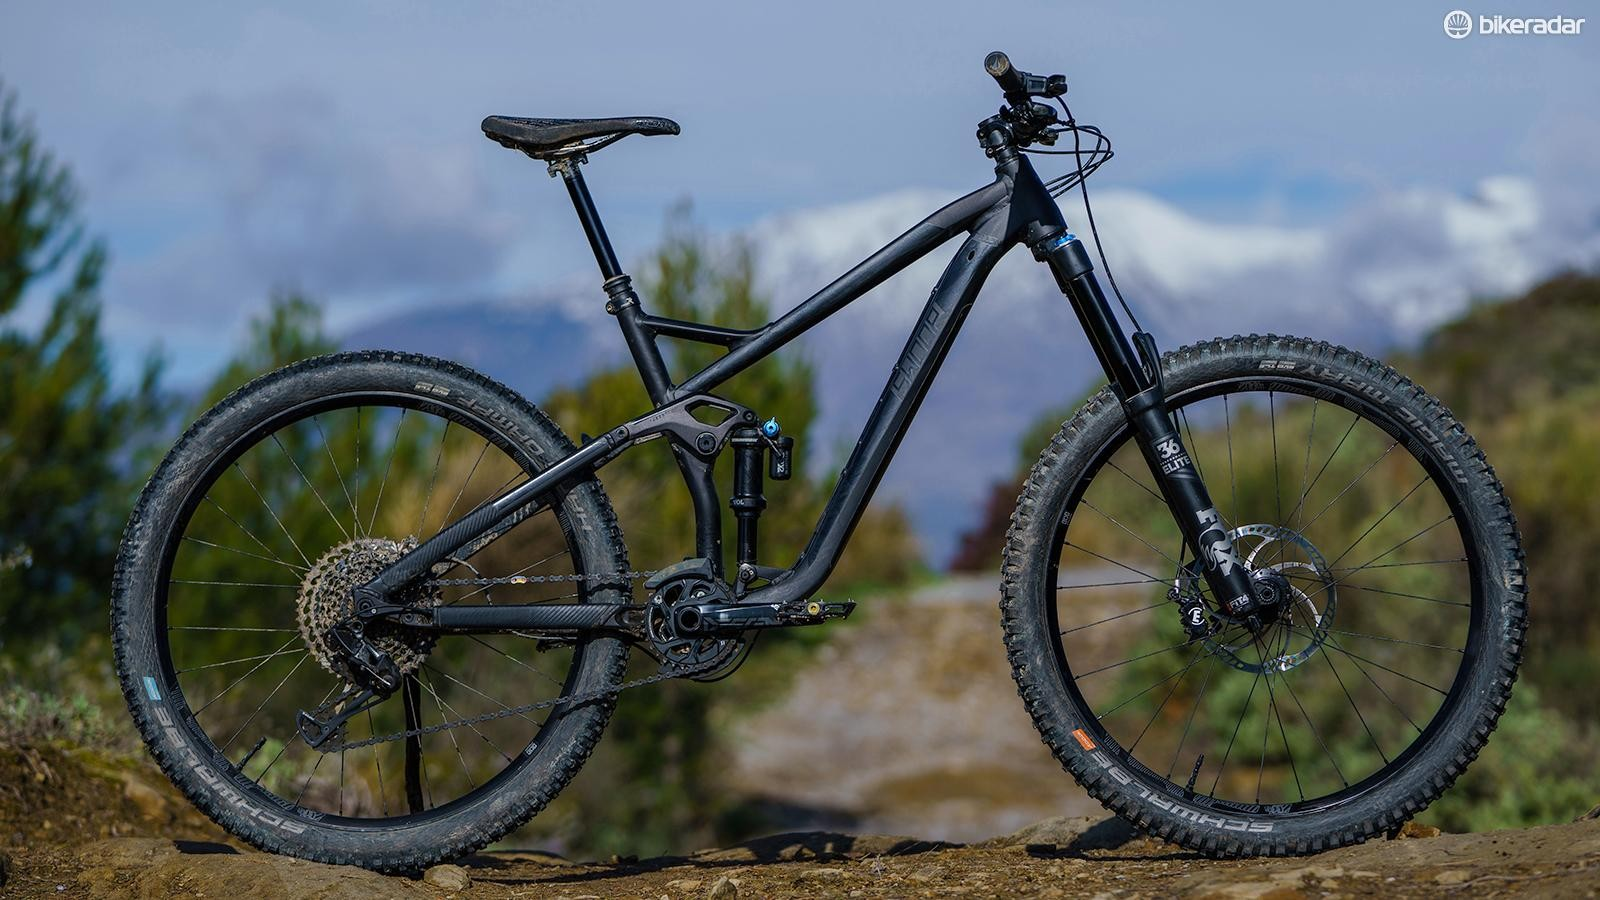 The Swoop 170 has great geometry and some seriously sorted components. It's hard not to like it